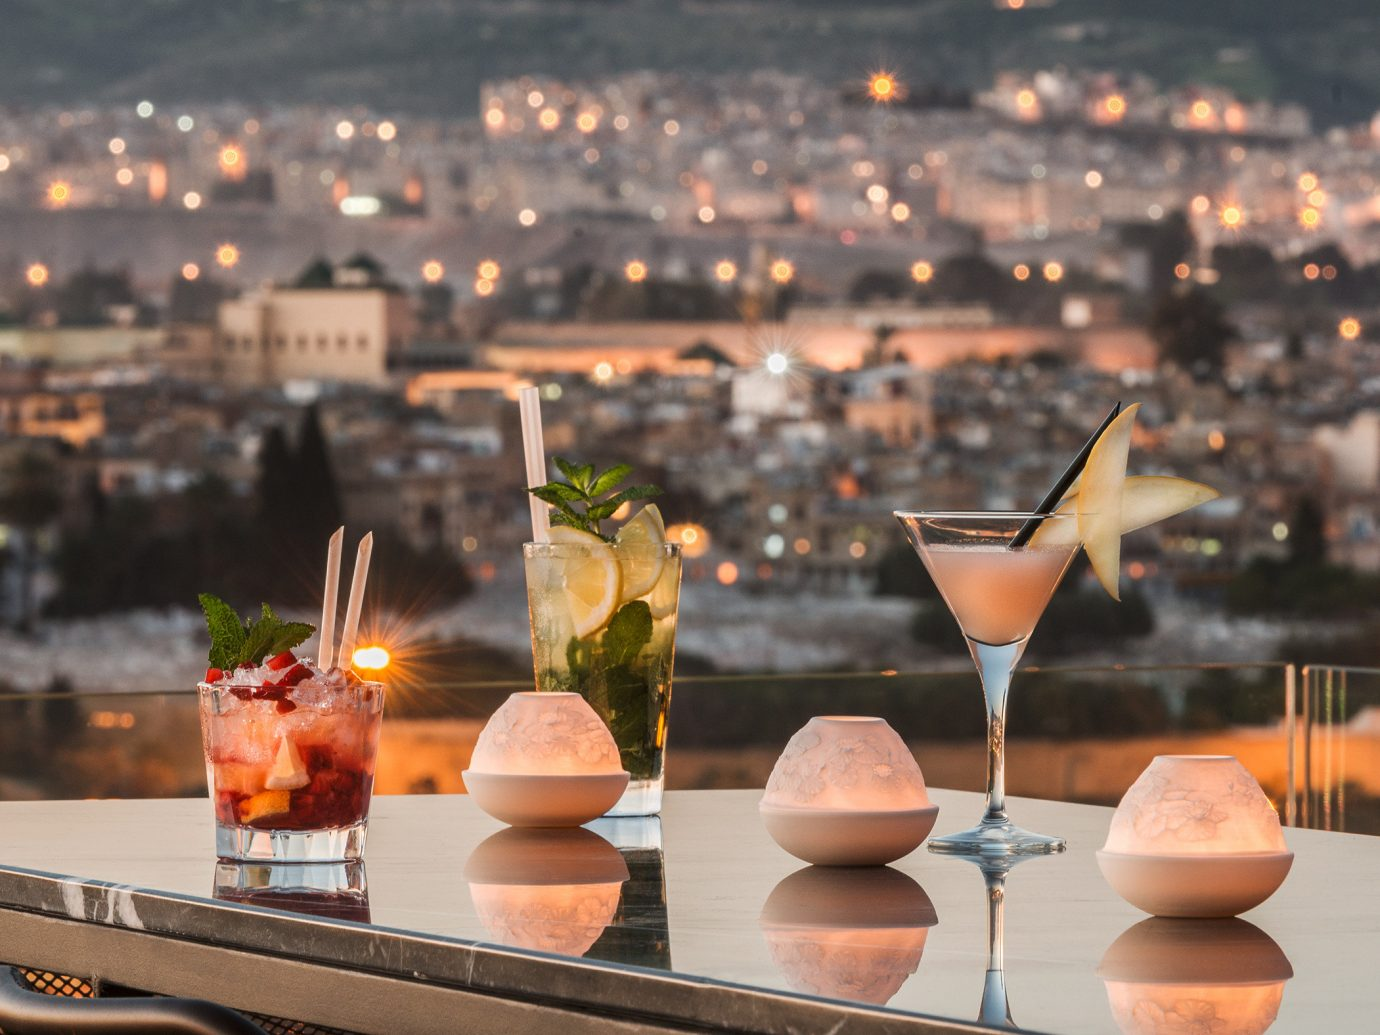 Balcony City Drink Resort Scenic views Trip Ideas cocktail morning food